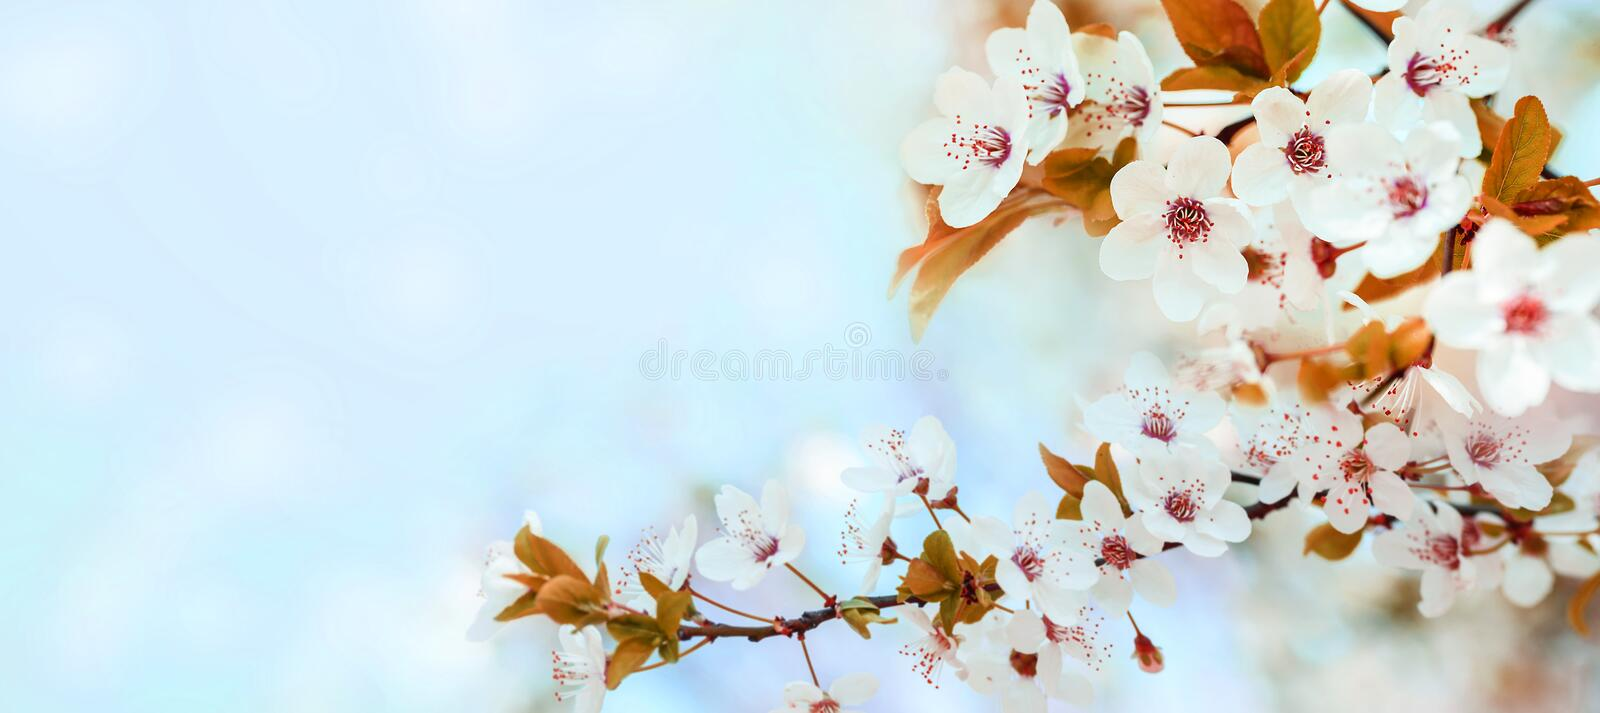 Spring flower blossom closeup with bokeh background. Springtime nature scene with cherry blossom tree in japanese garden and royalty free stock photos